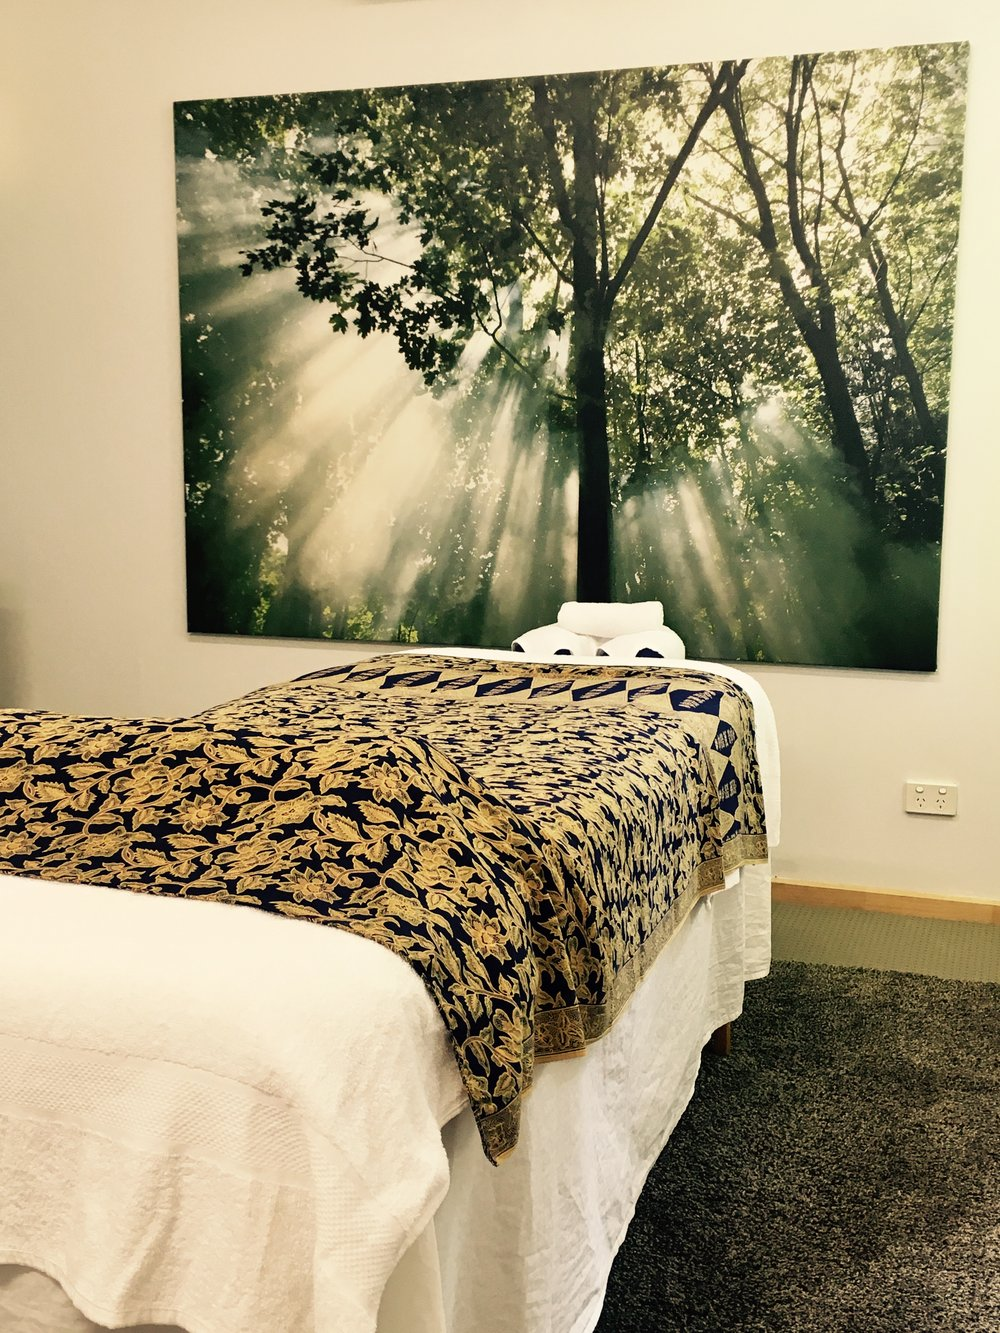 Our treatment room at Awakened Lotus, Ashgrove